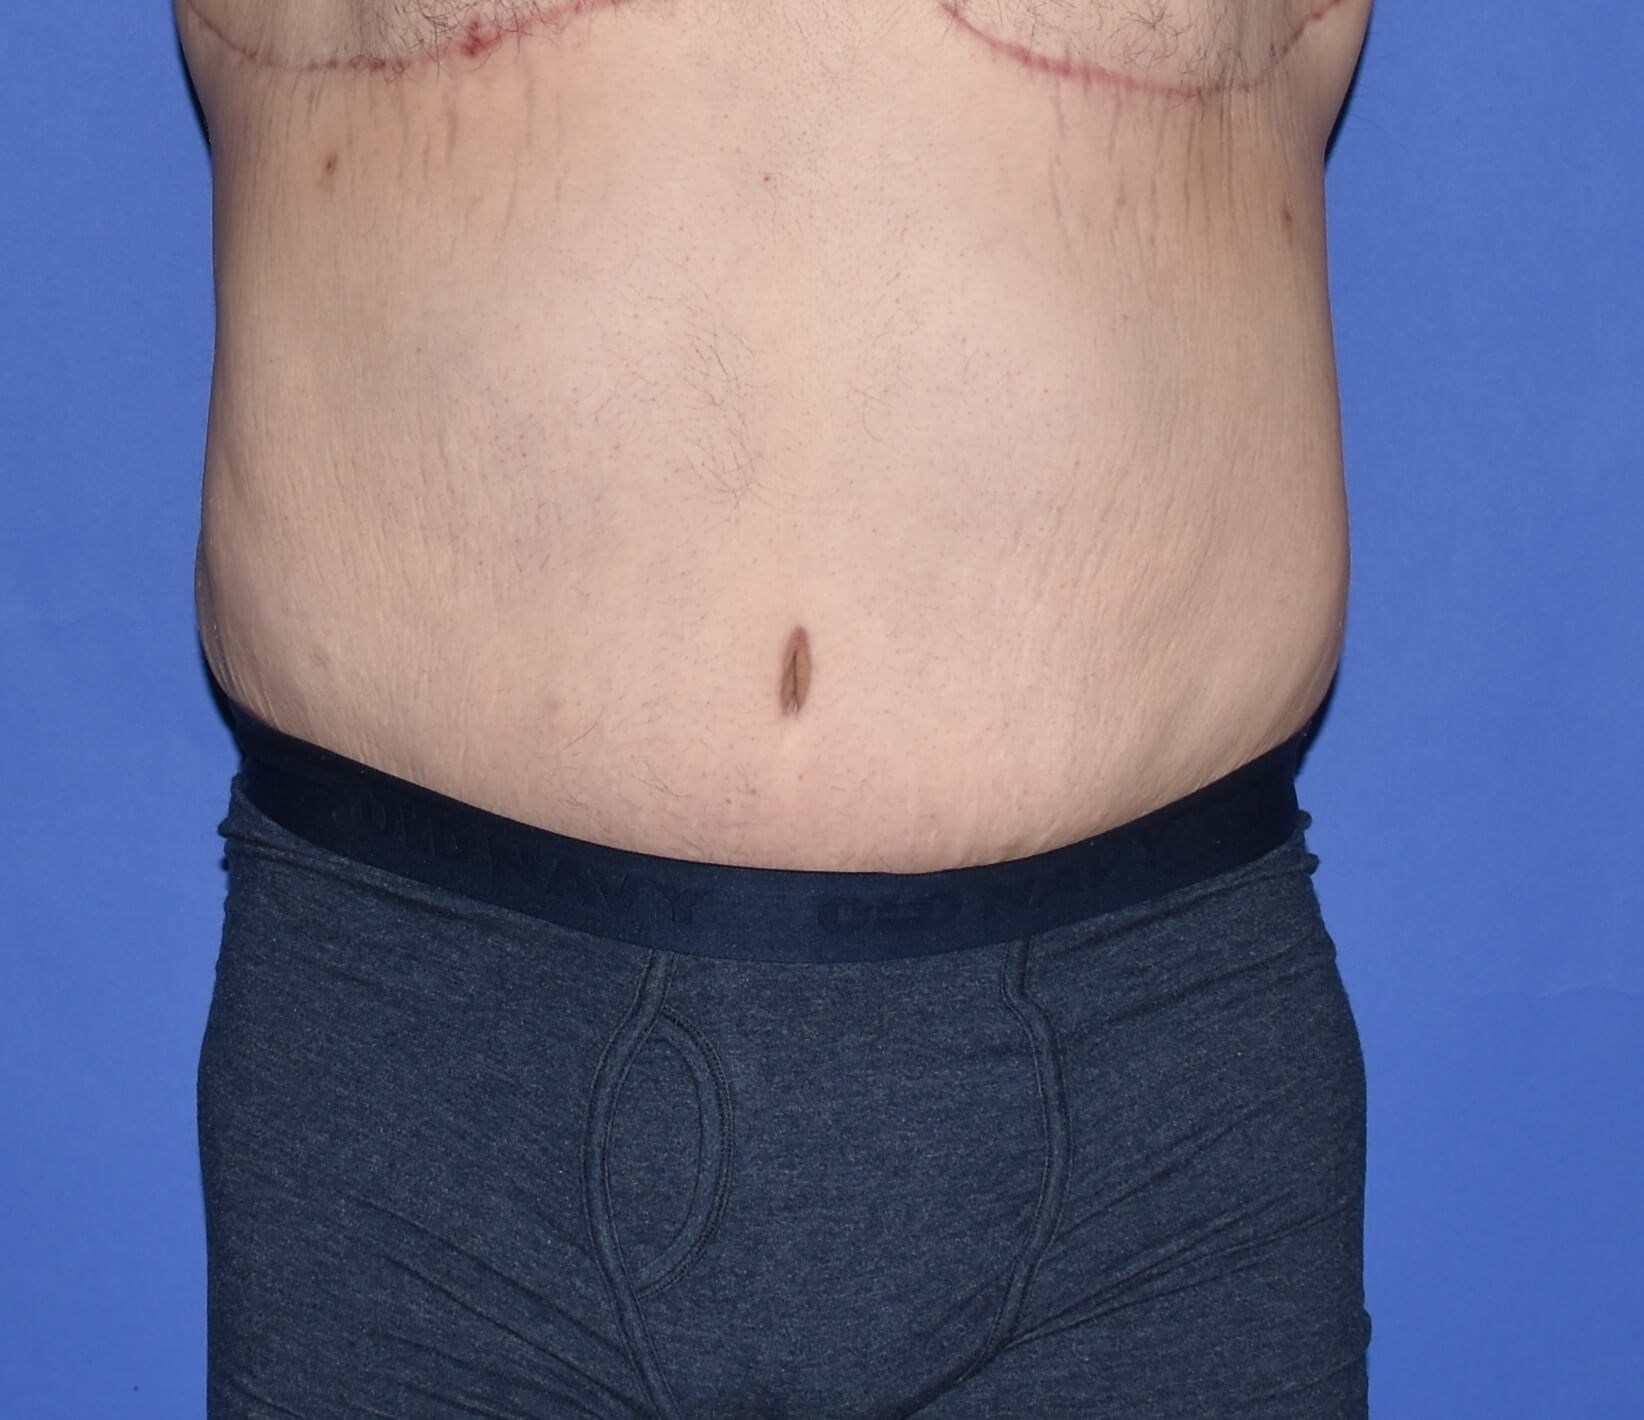 Post-Weight Loss Surgery After